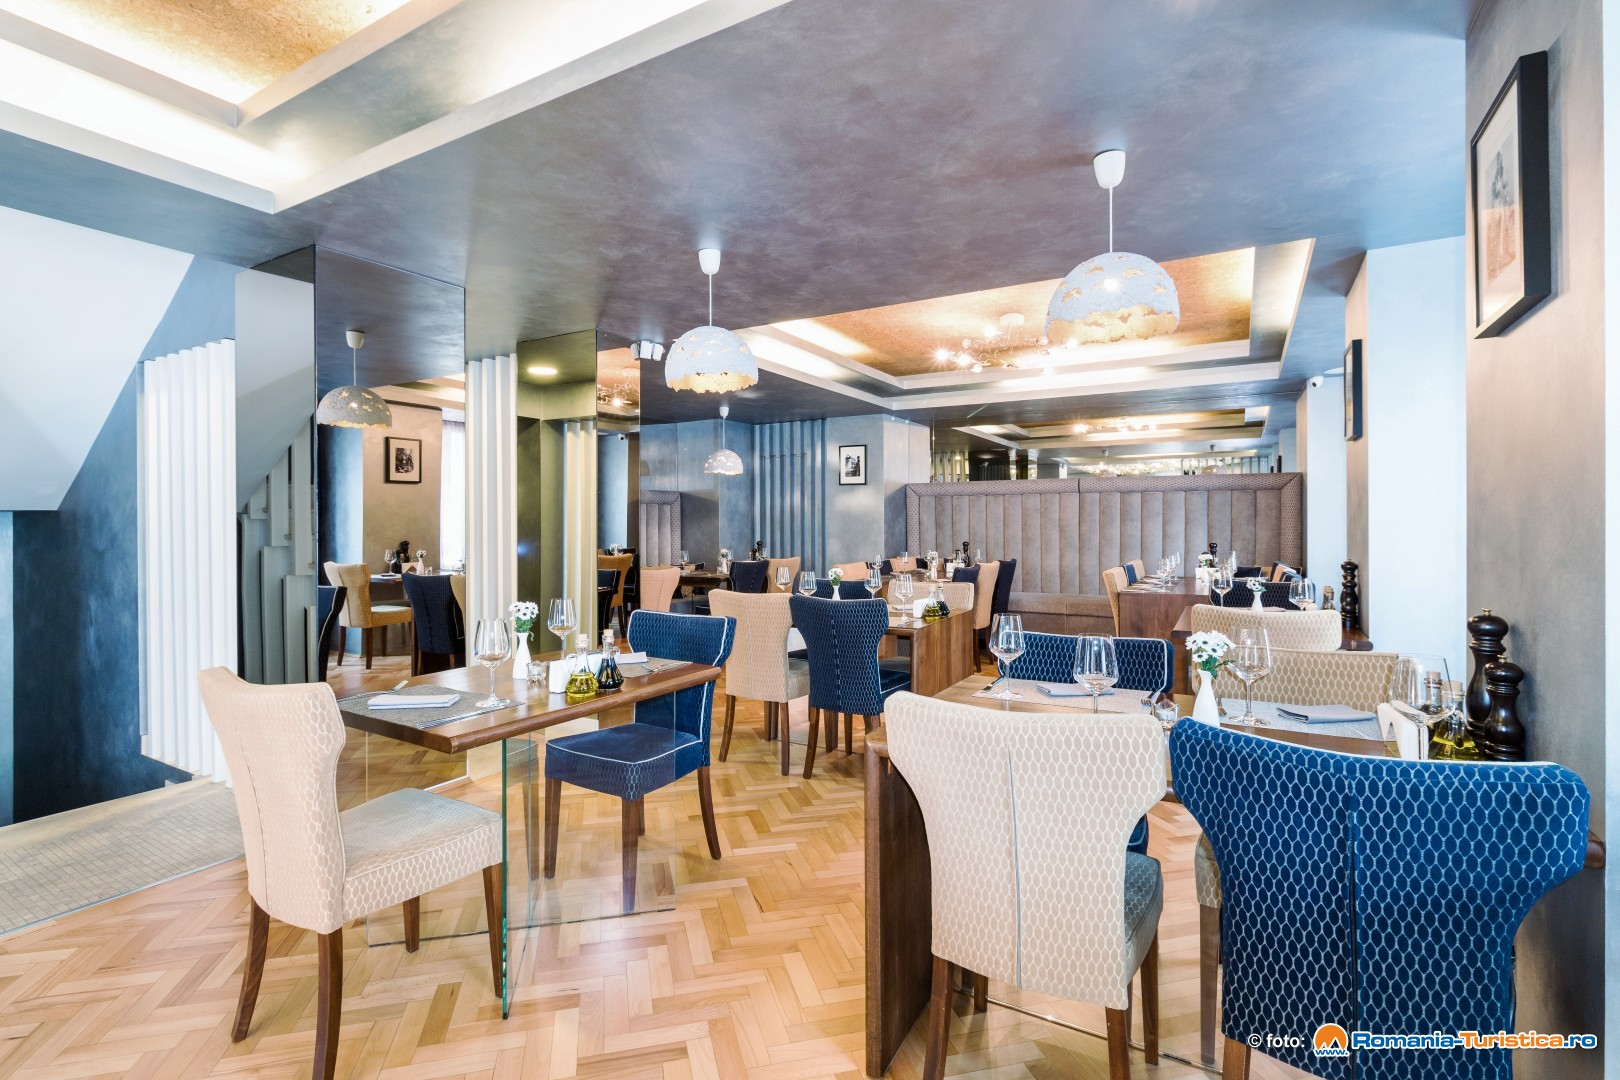 Restaurant Hugo - Imagine de ansamblu